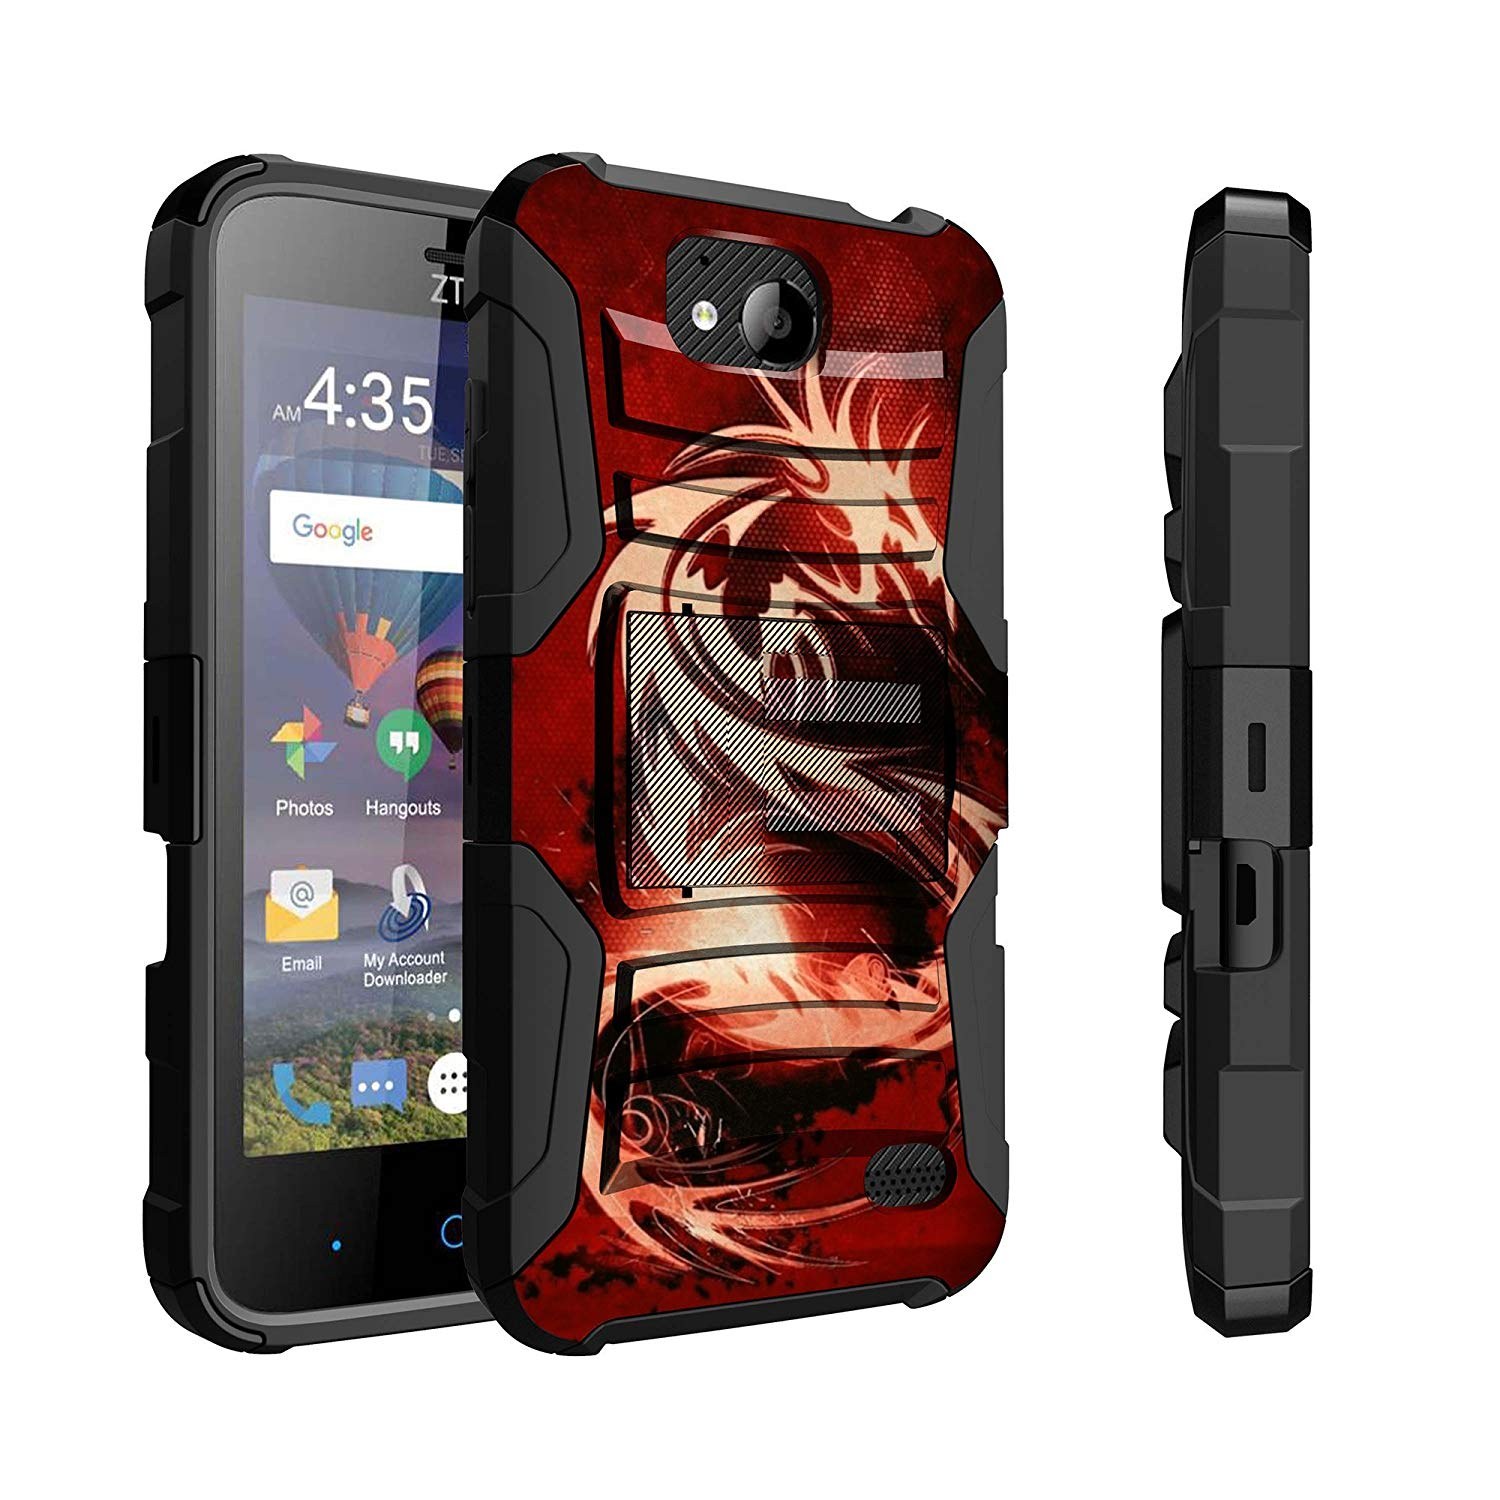 Untouchble Case for ZTE Majesty Pro Case, ZTE Majesty Pro Plus Case [Heavy Duty Clip] Combat Shockproof Two Layer Belt Clip Kickstand Cover Rugged - Red Dragon